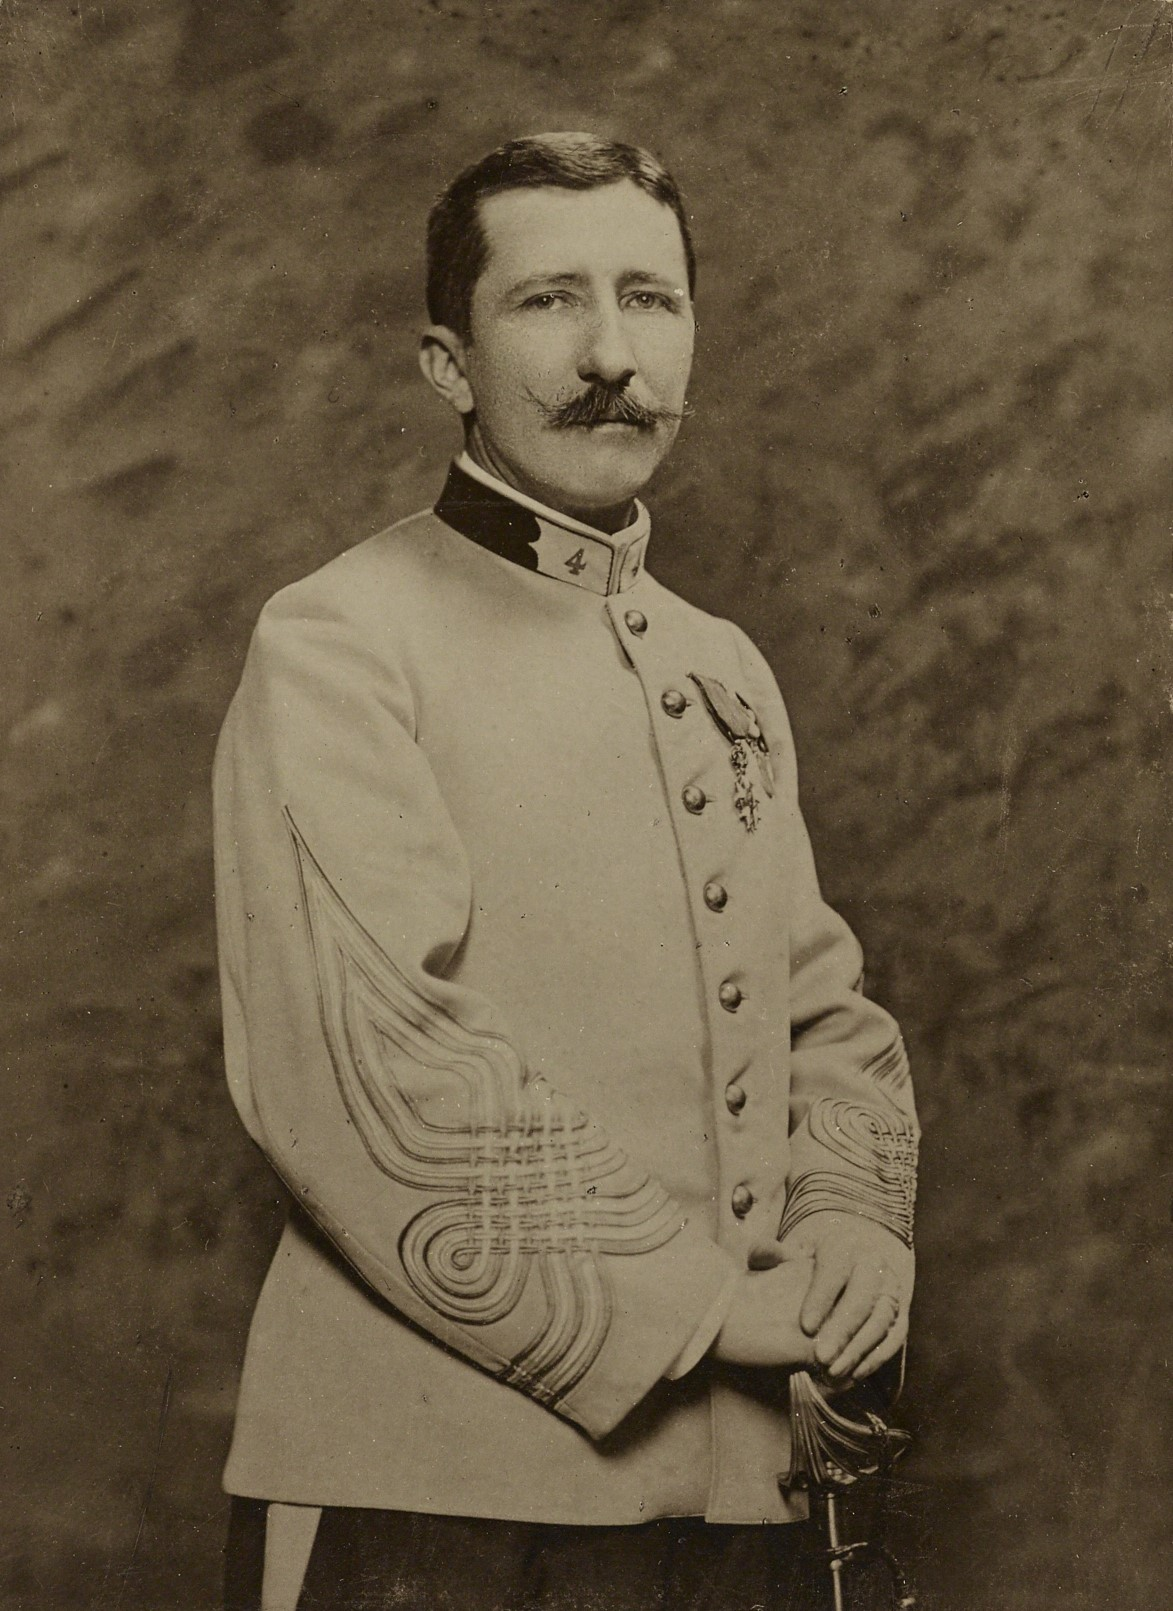 Photo du colonel Piquart - Affaire Dreyfus